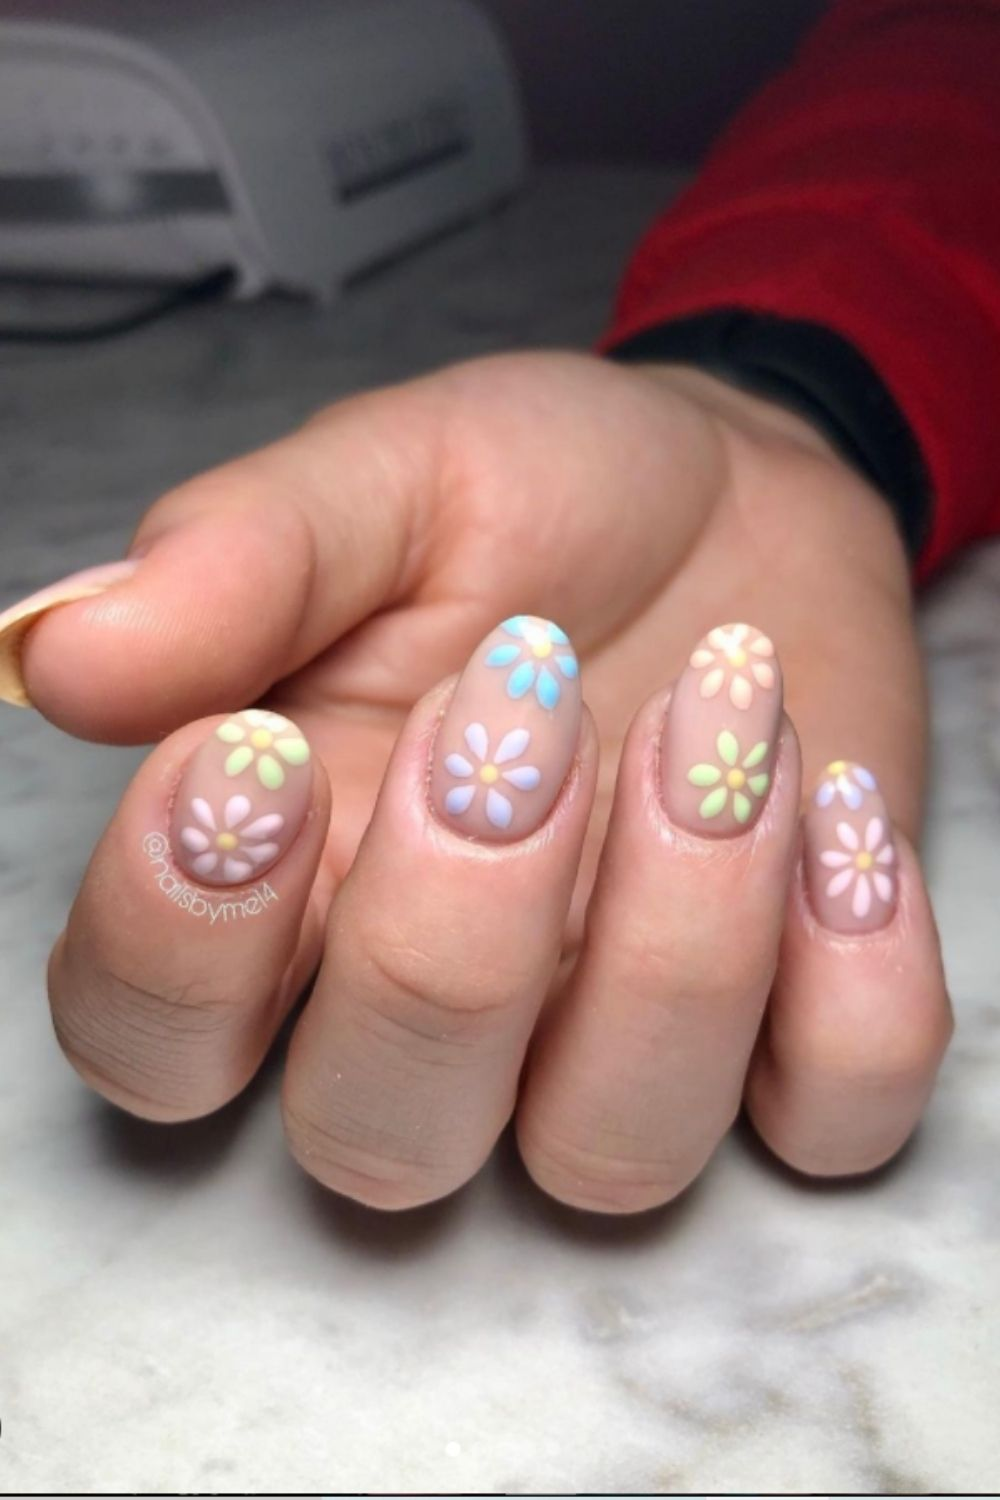 Oval nails art designs with flowers